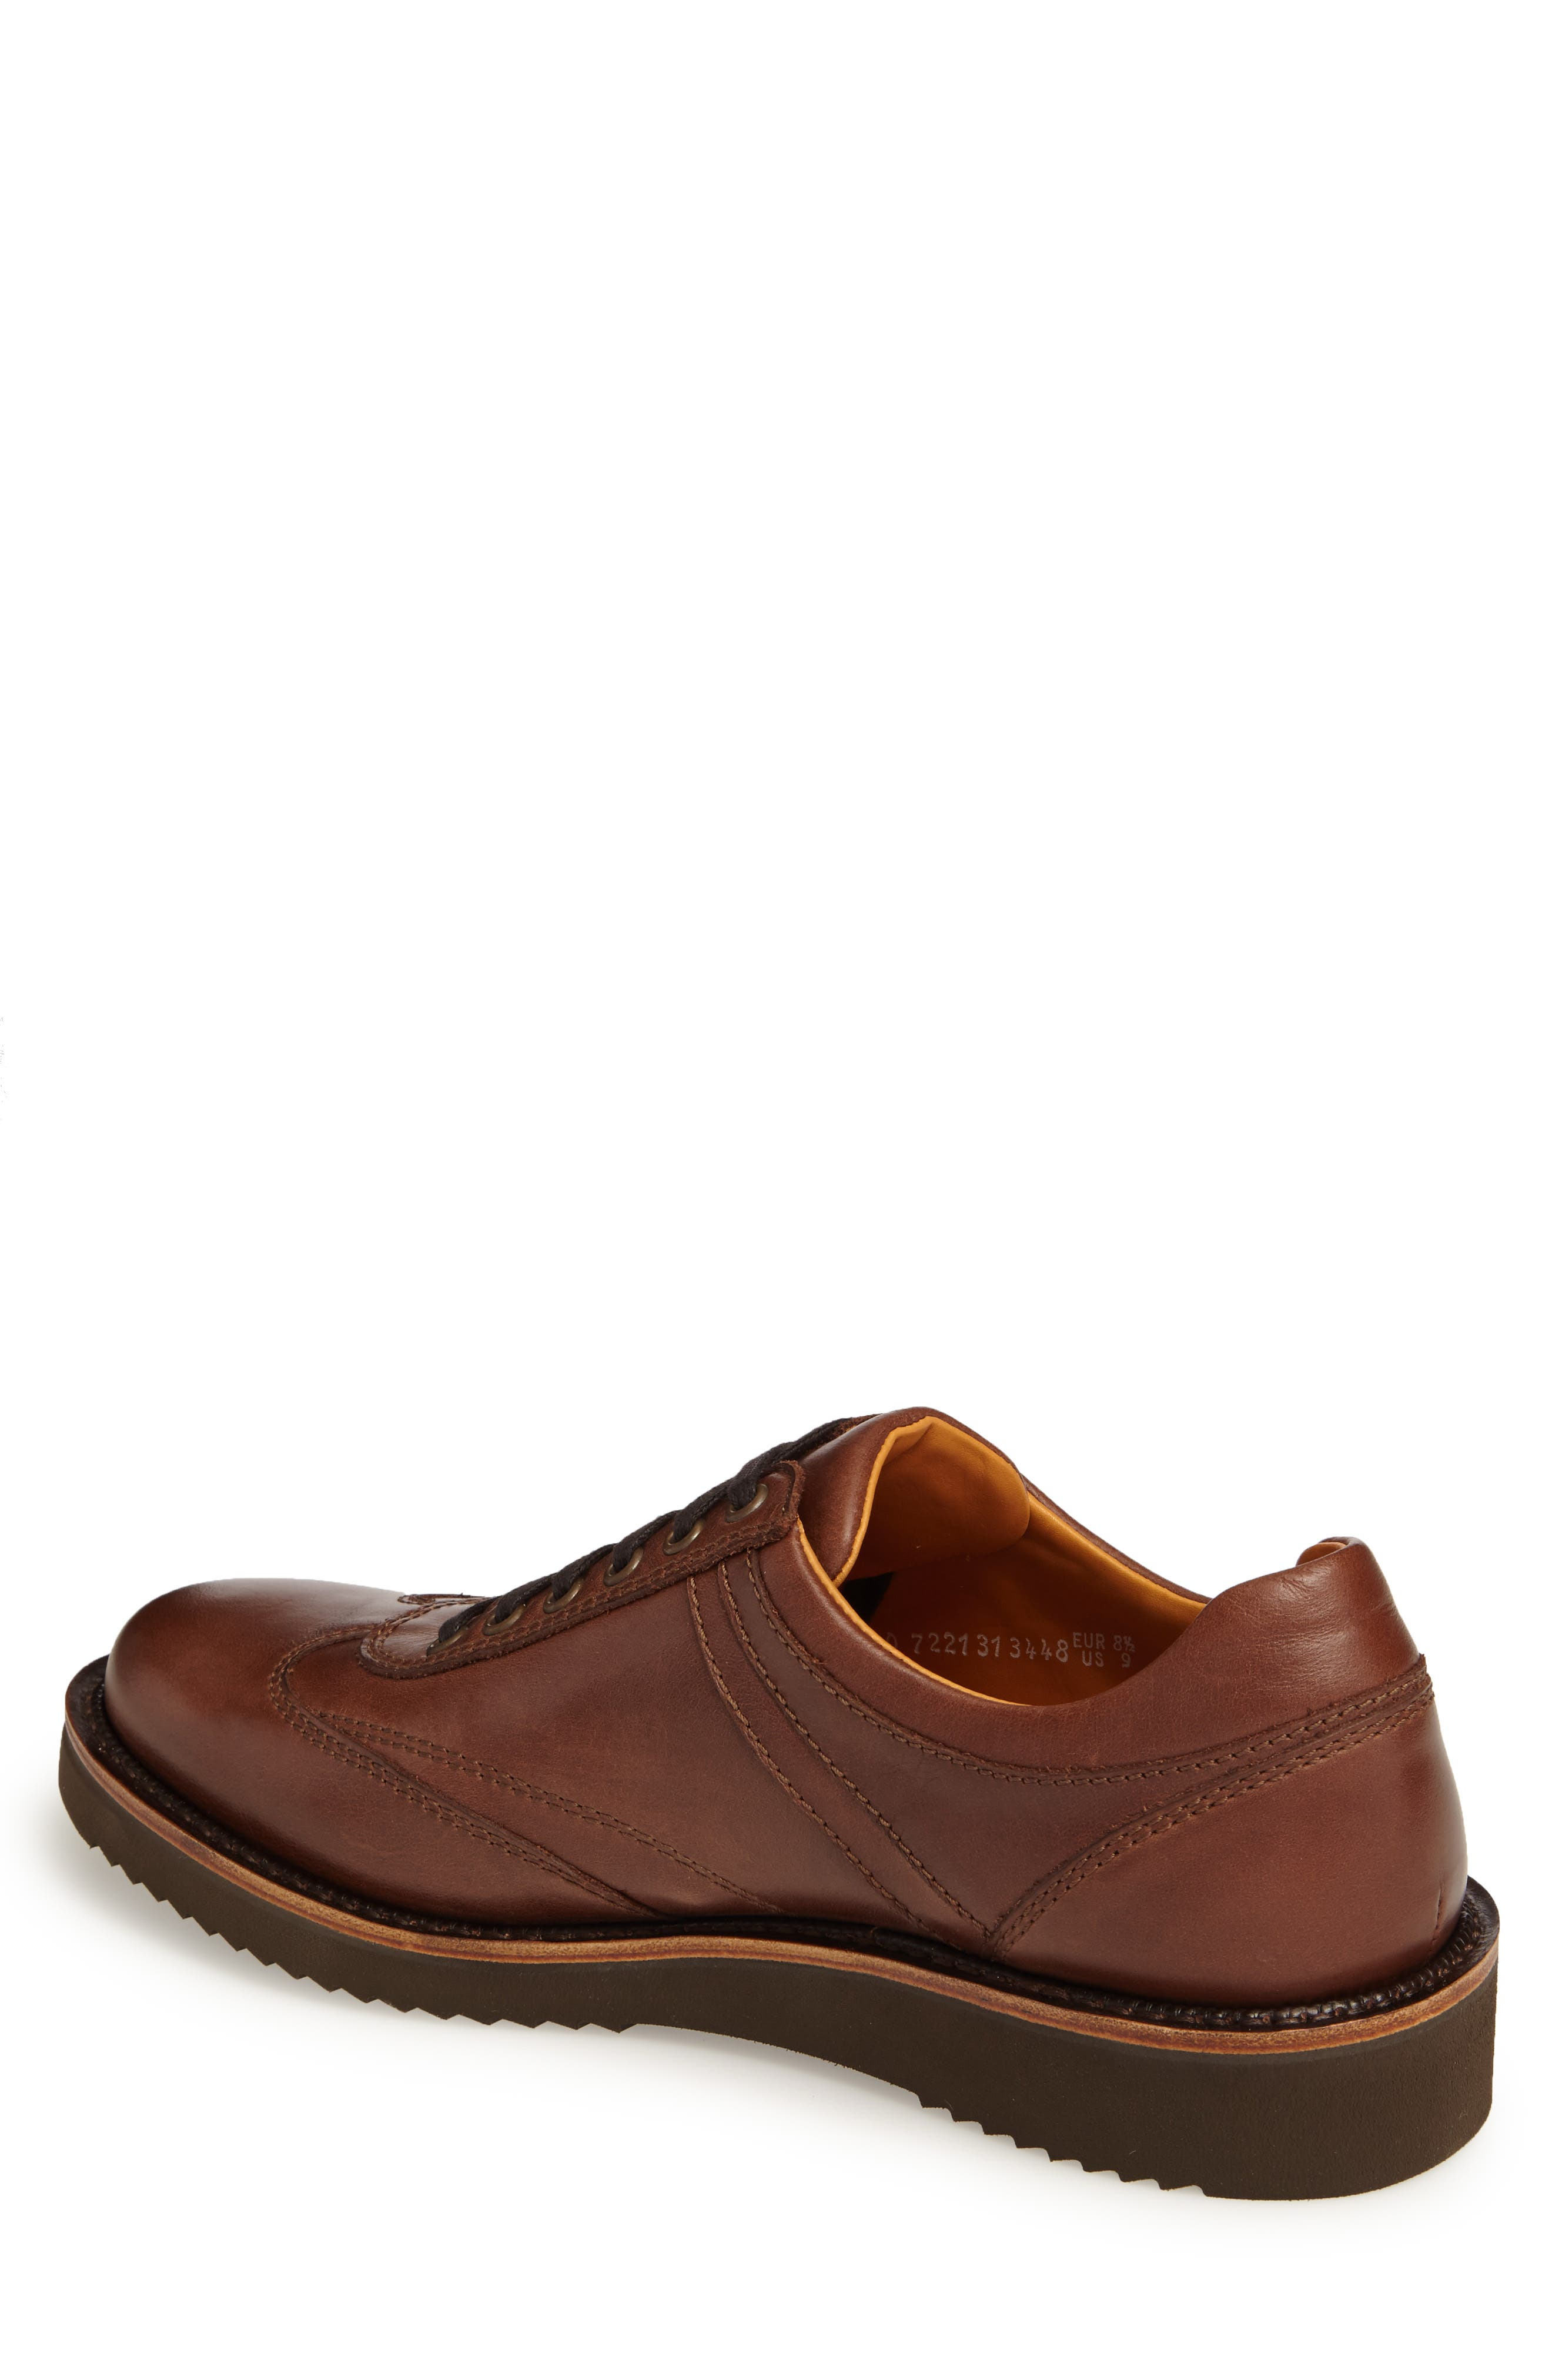 MEPHISTO, Adriano Sneaker, Alternate thumbnail 2, color, CHESTNUT LEATHER